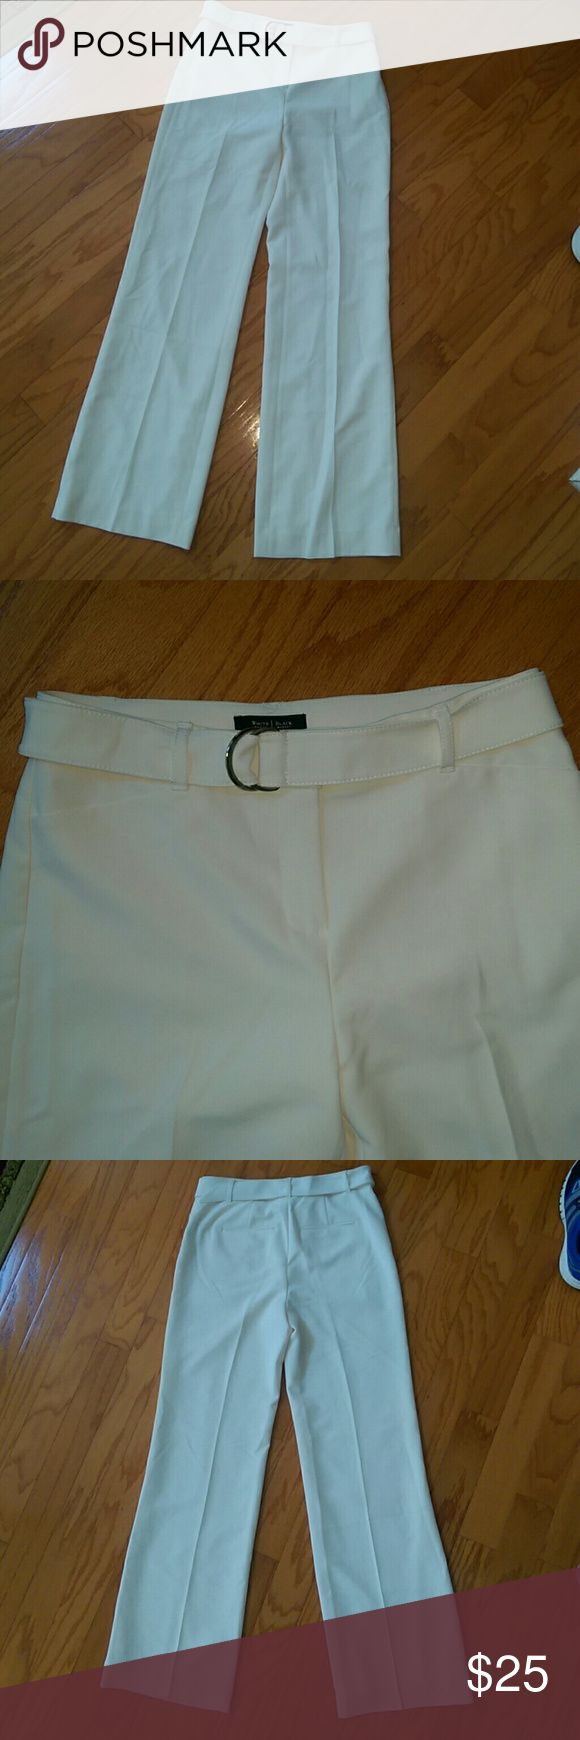 """WHBM wide leg trousers Ladies?Off-white (ivory)?wide leg?stretch trousers/ pants?from WHITE HOUSE BLACK MARKET  Size 2R  Waist: 29"""" Hips: 40"""" Rise: 10"""" Inseam: 32"""" Thigh width: 24"""" Width at bottom of leg: 21""""  STRETCH?fabric (91% polyester, 9% SPANDEX)  Front & hip flat pockets (still factory sewn shut).??Belt with gold tone buckle. Fully lined.   Machine Washable. STRETCH.  In?excellent condition.  No stains, tears or holes. White House Black Market Pants Trousers"""